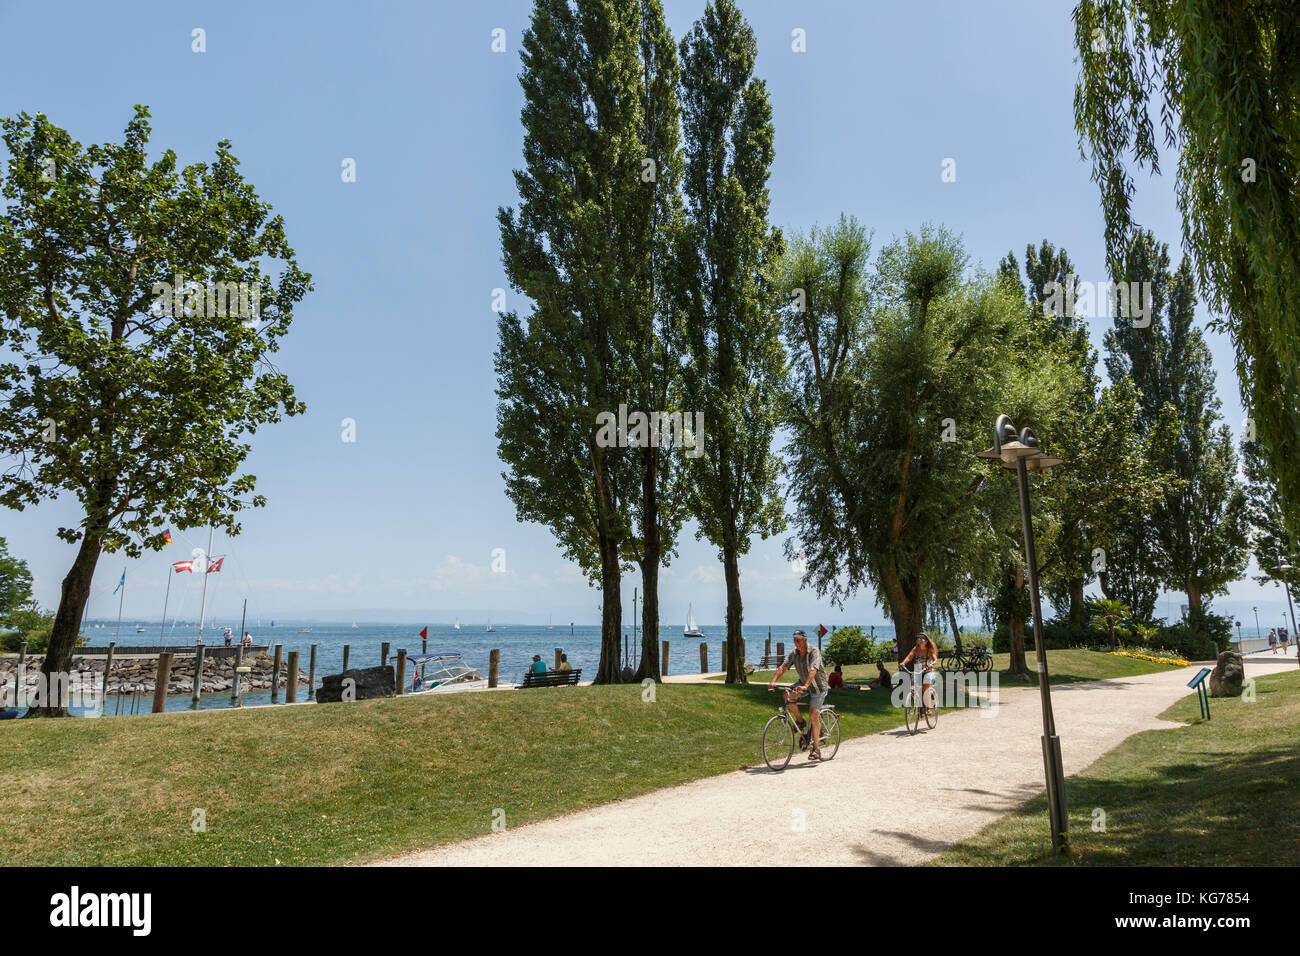 Cycling beside the lake at Immenstaad am Bodensee, Baden-Württemberg, Germany Stock Photo